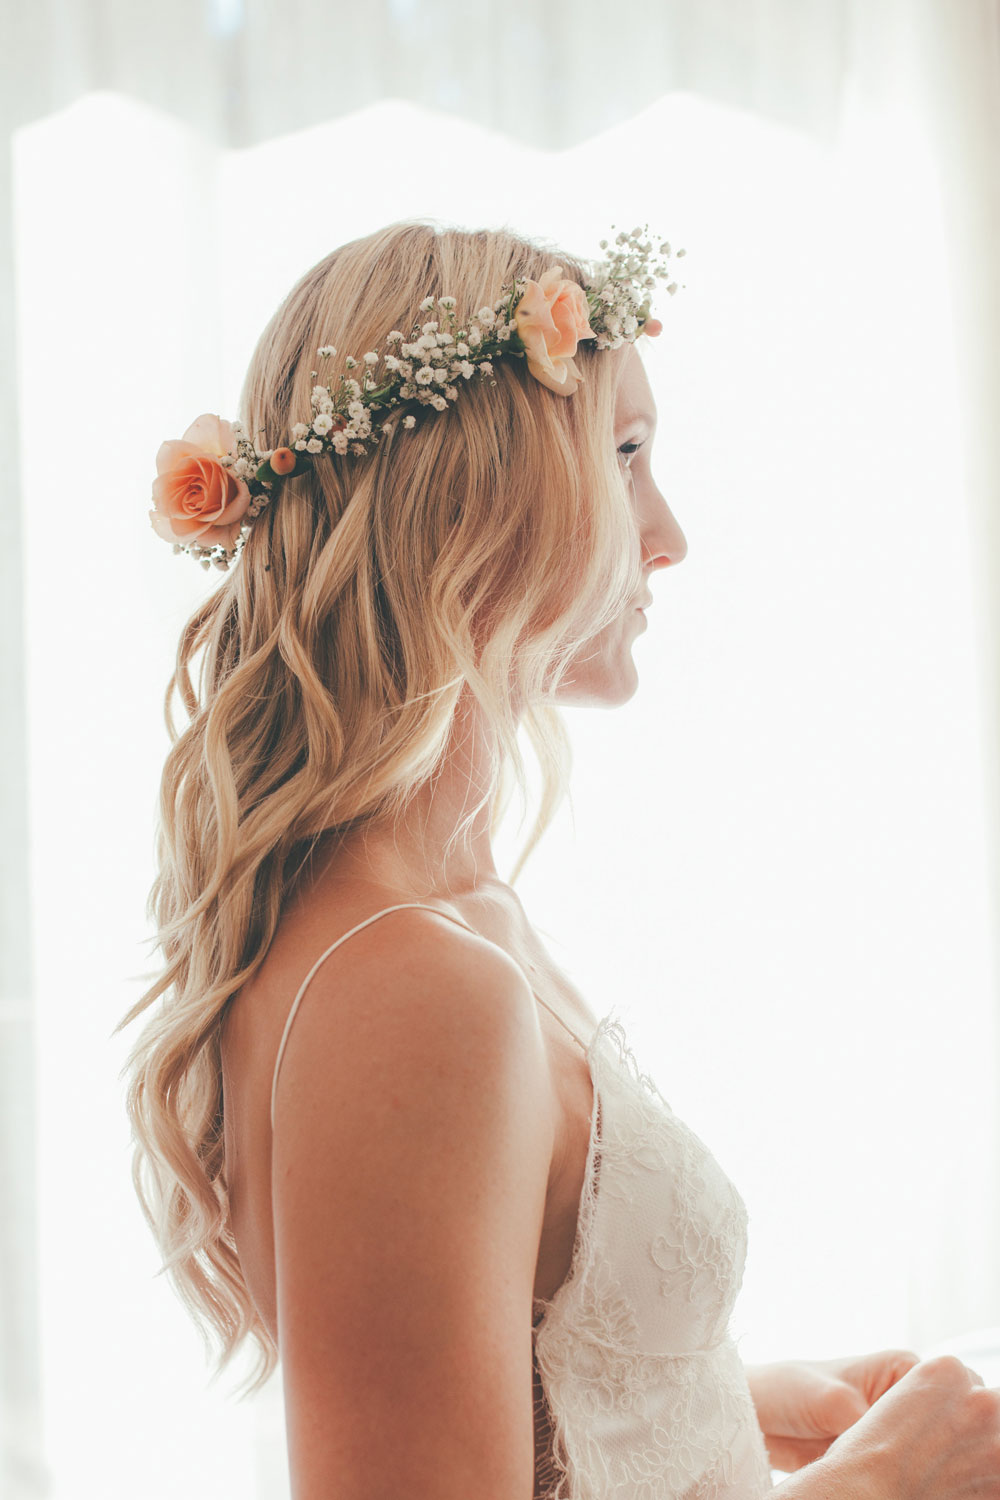 Bride Wearing Flower Crown Designed by Kate Healey